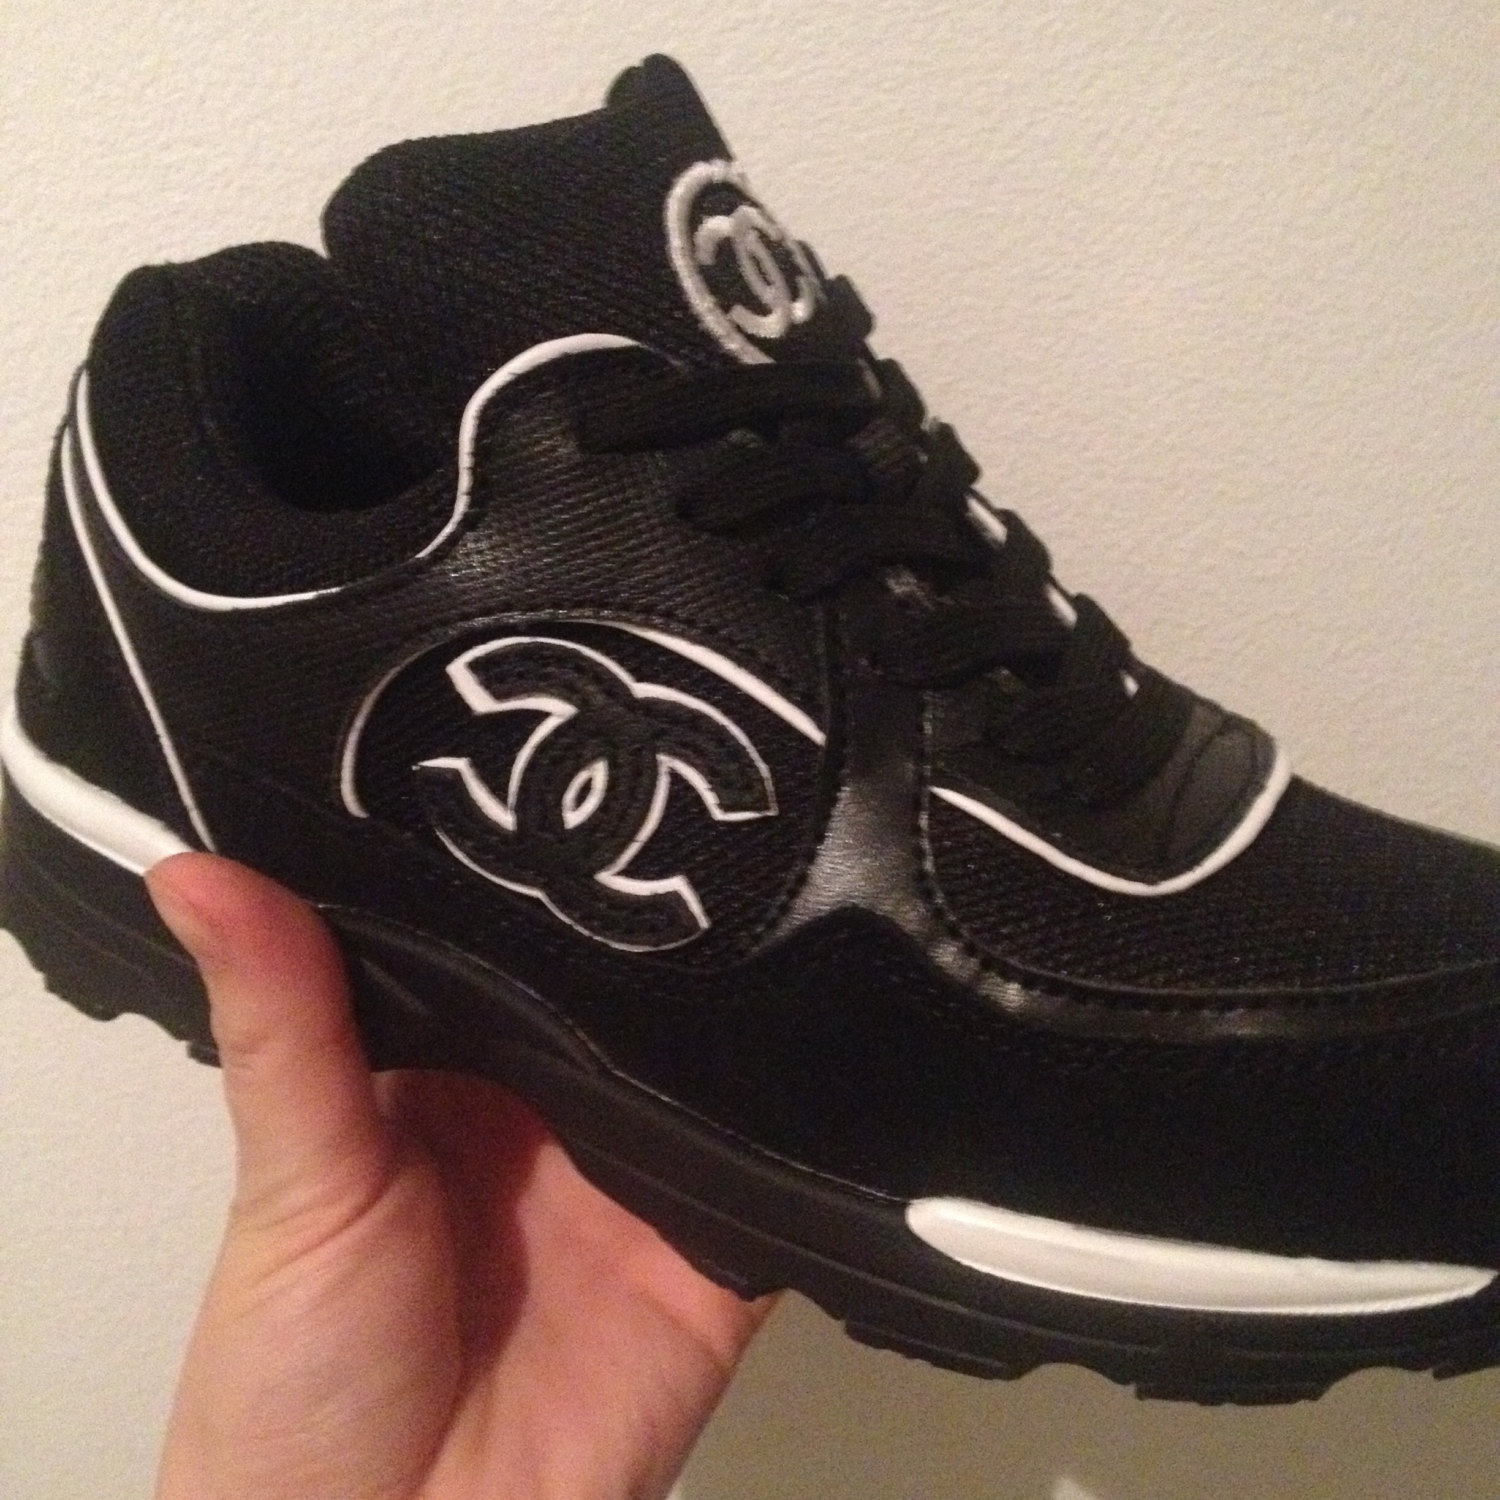 chanel black tennis running sneakers shoes